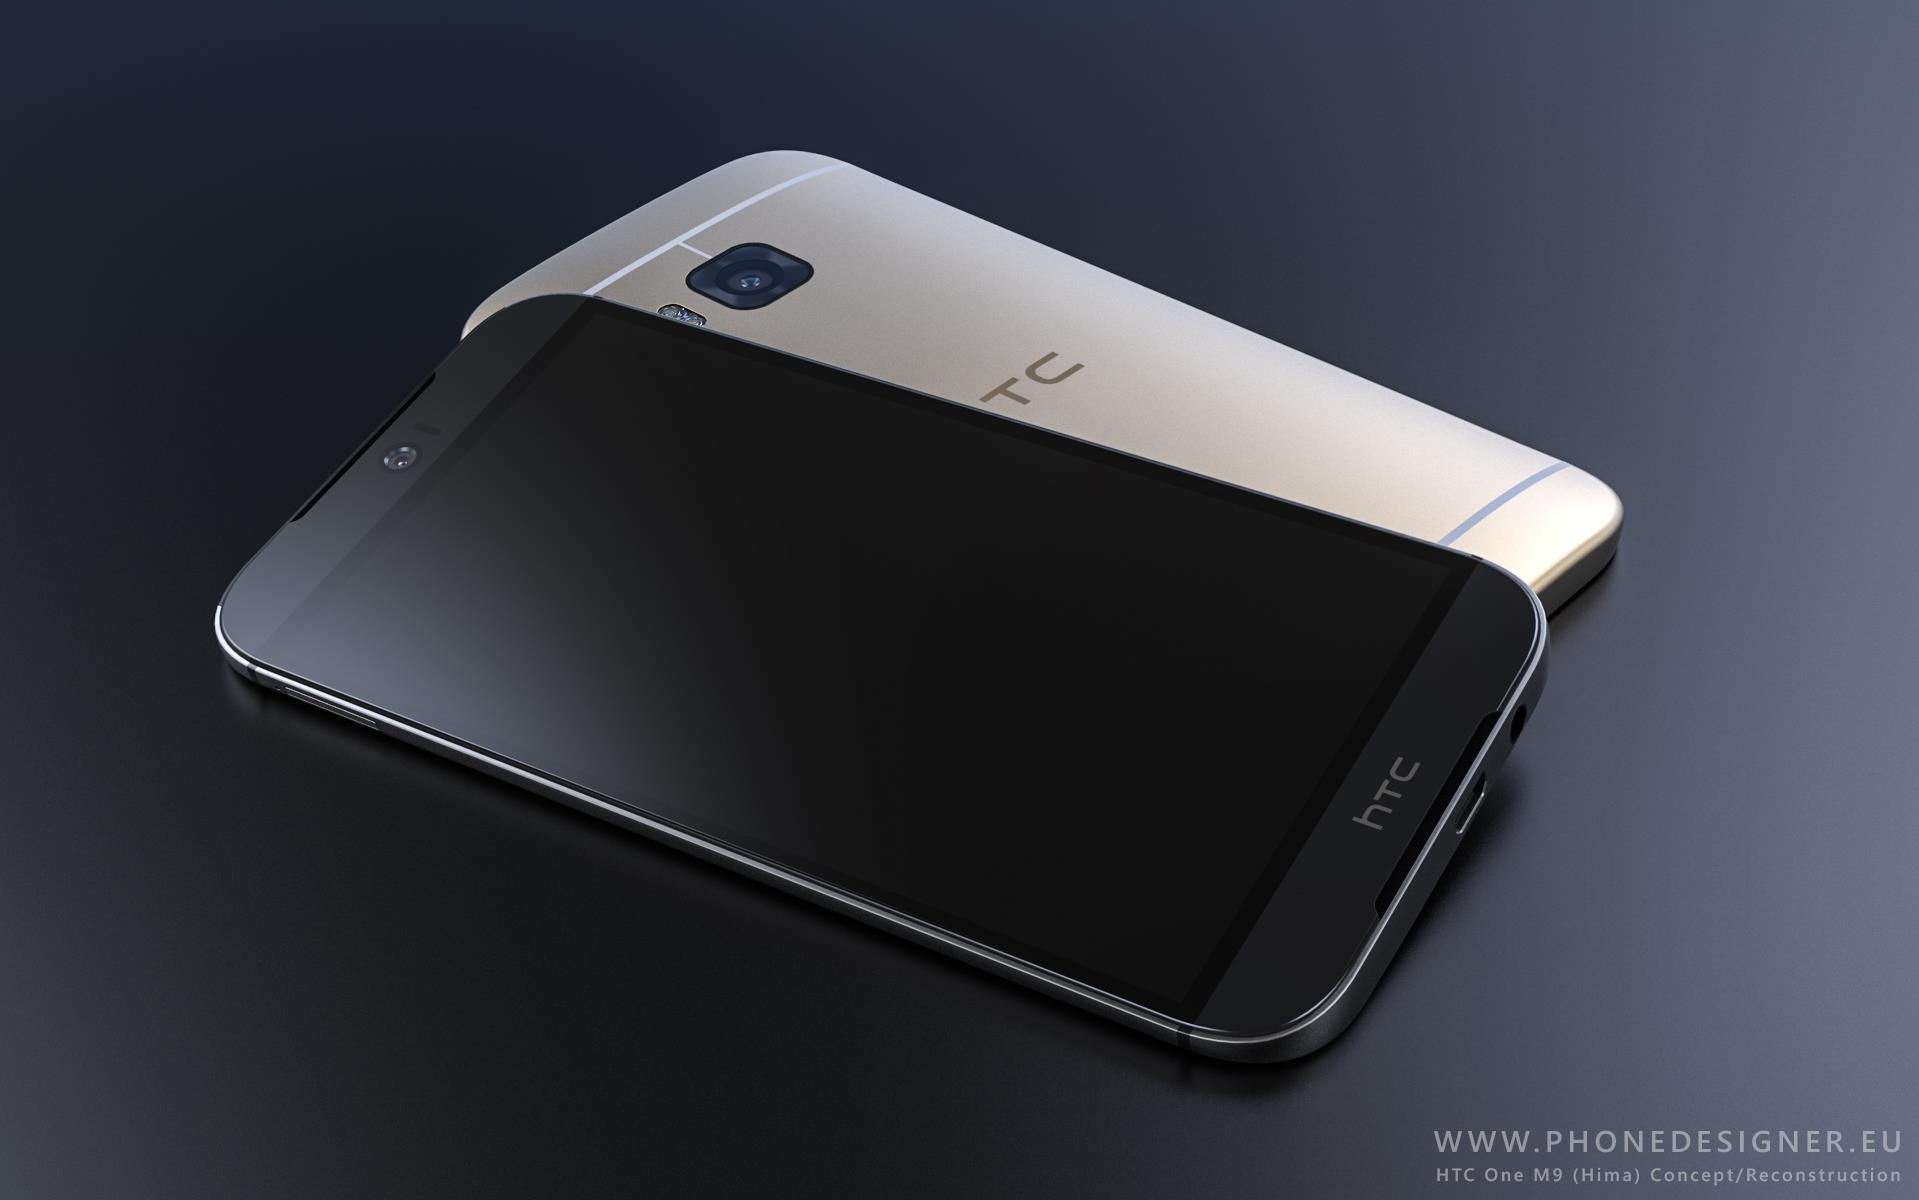 HTC-One-M9-renders---this-phone-is-on-fire (1)